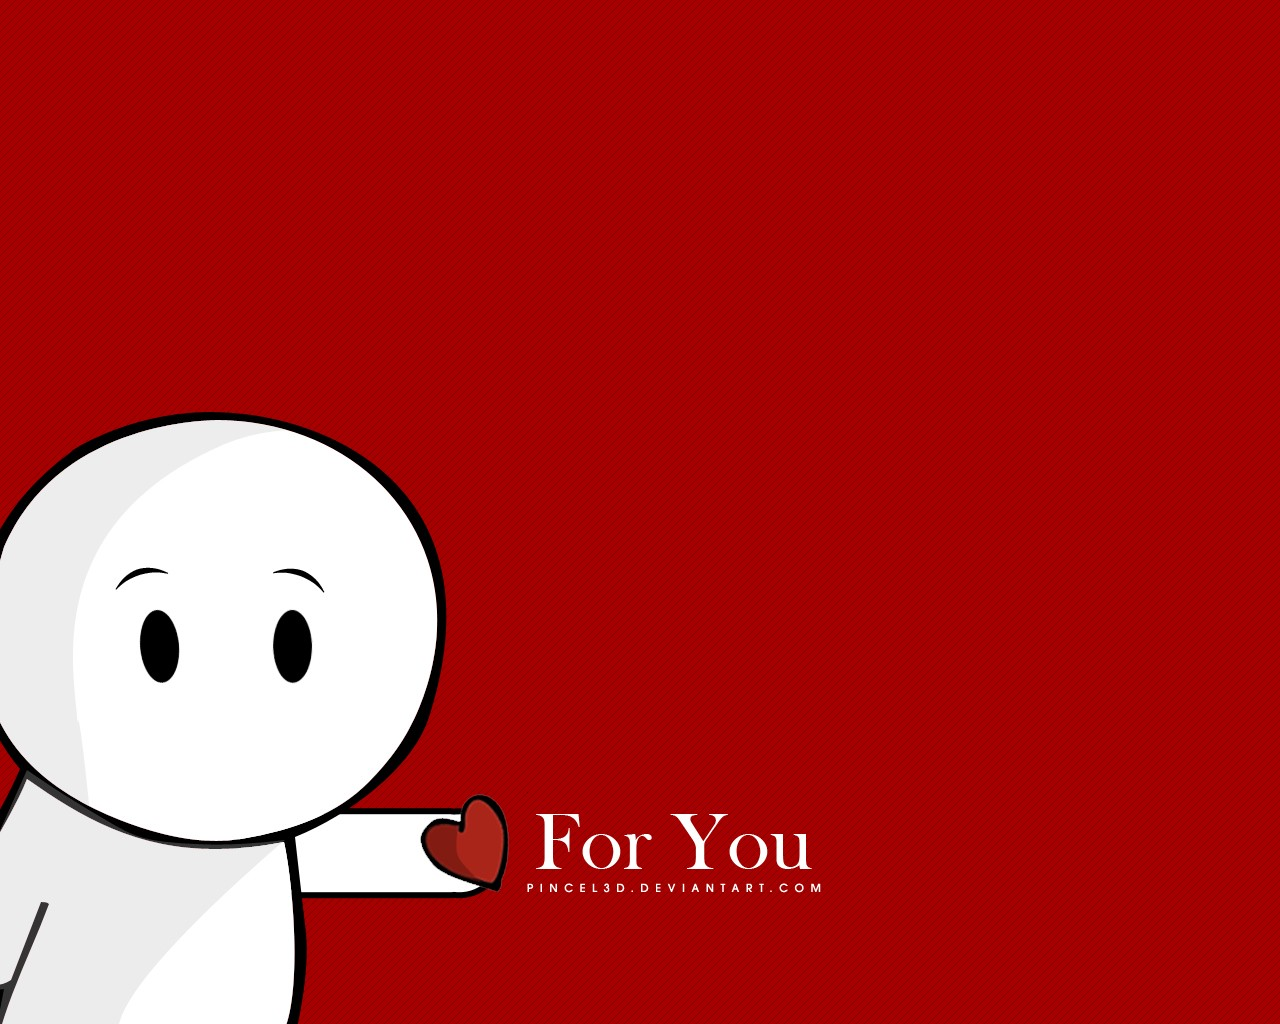 Wallpaper All My Love Is For You : I Love You Wallpapers HD A16 - HD Desktop Wallpapers 4k HD